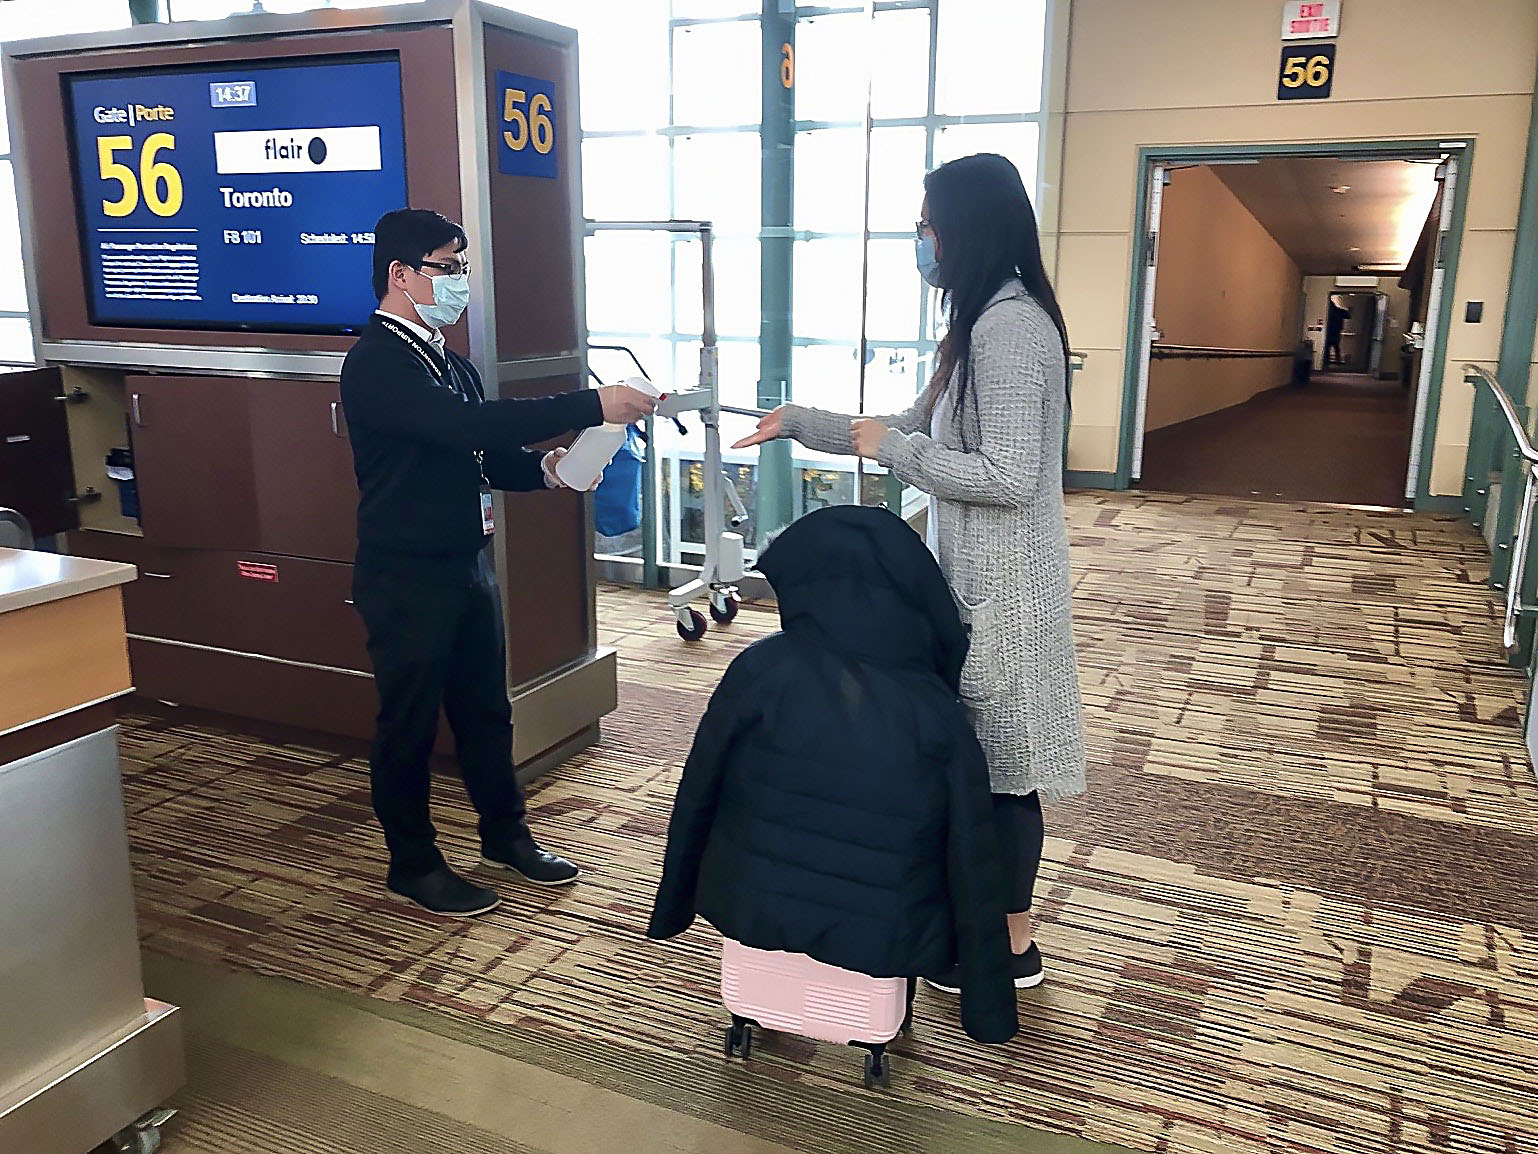 Flair Airlines supporting new Transport Canada mask requirement for travellers in Canada